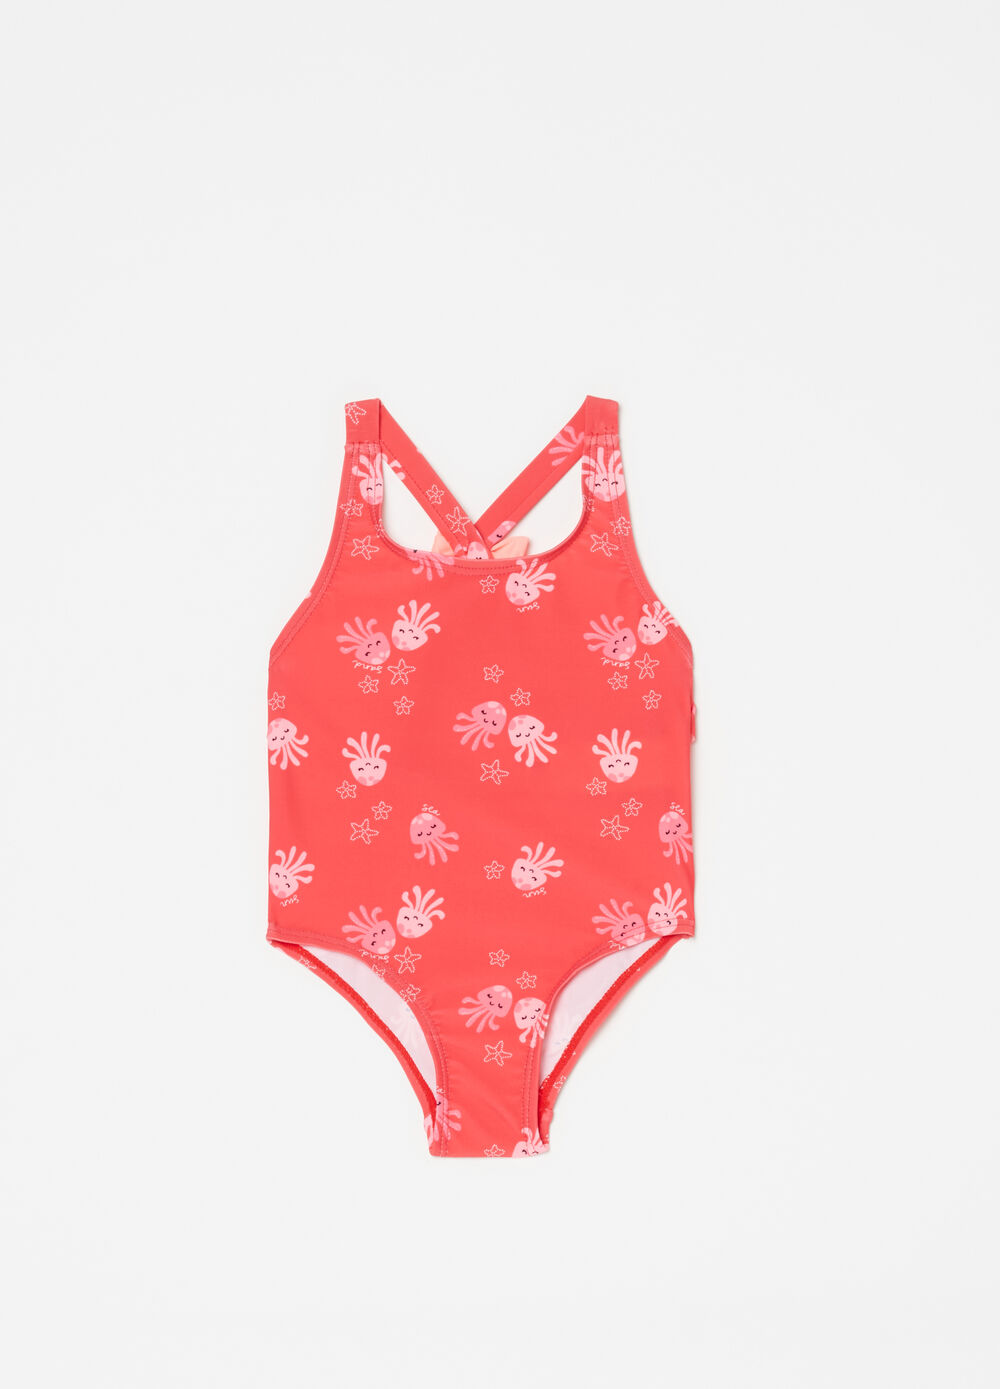 One-piece swimsuit with bow, frills and octopus